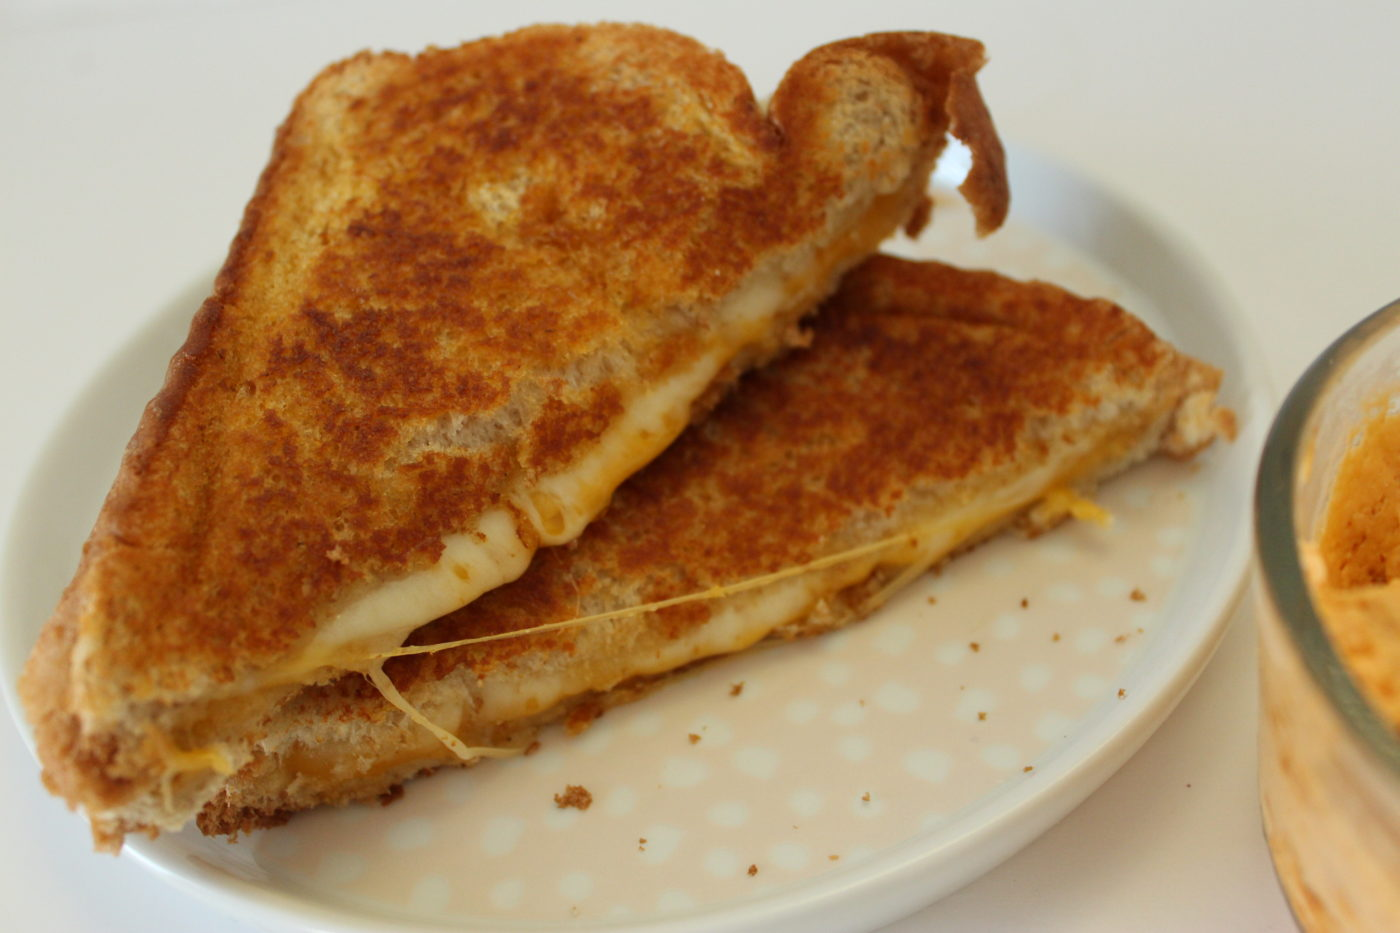 Adding sriracha butter to a comforting grilled cheese sandwich gives it the richest flavor.